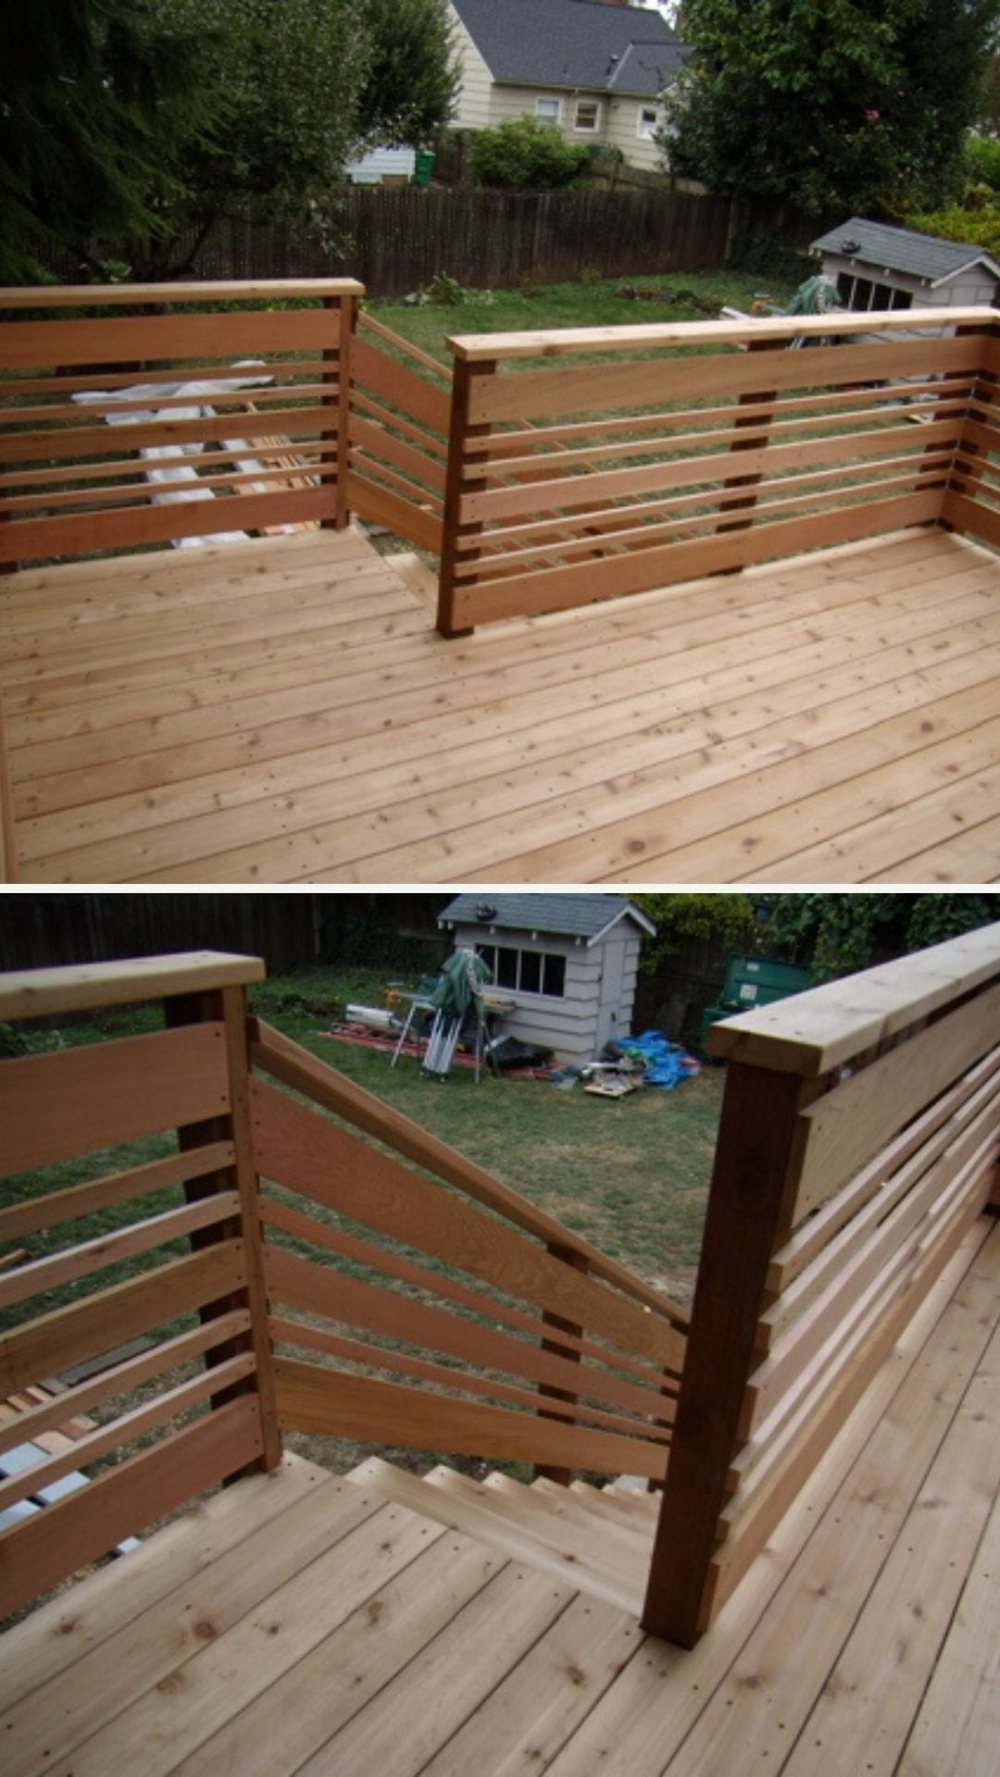 21 Creative Diy Deck Railing Ideas And Projects With Instructions Deck Railings Diy Deck Deck